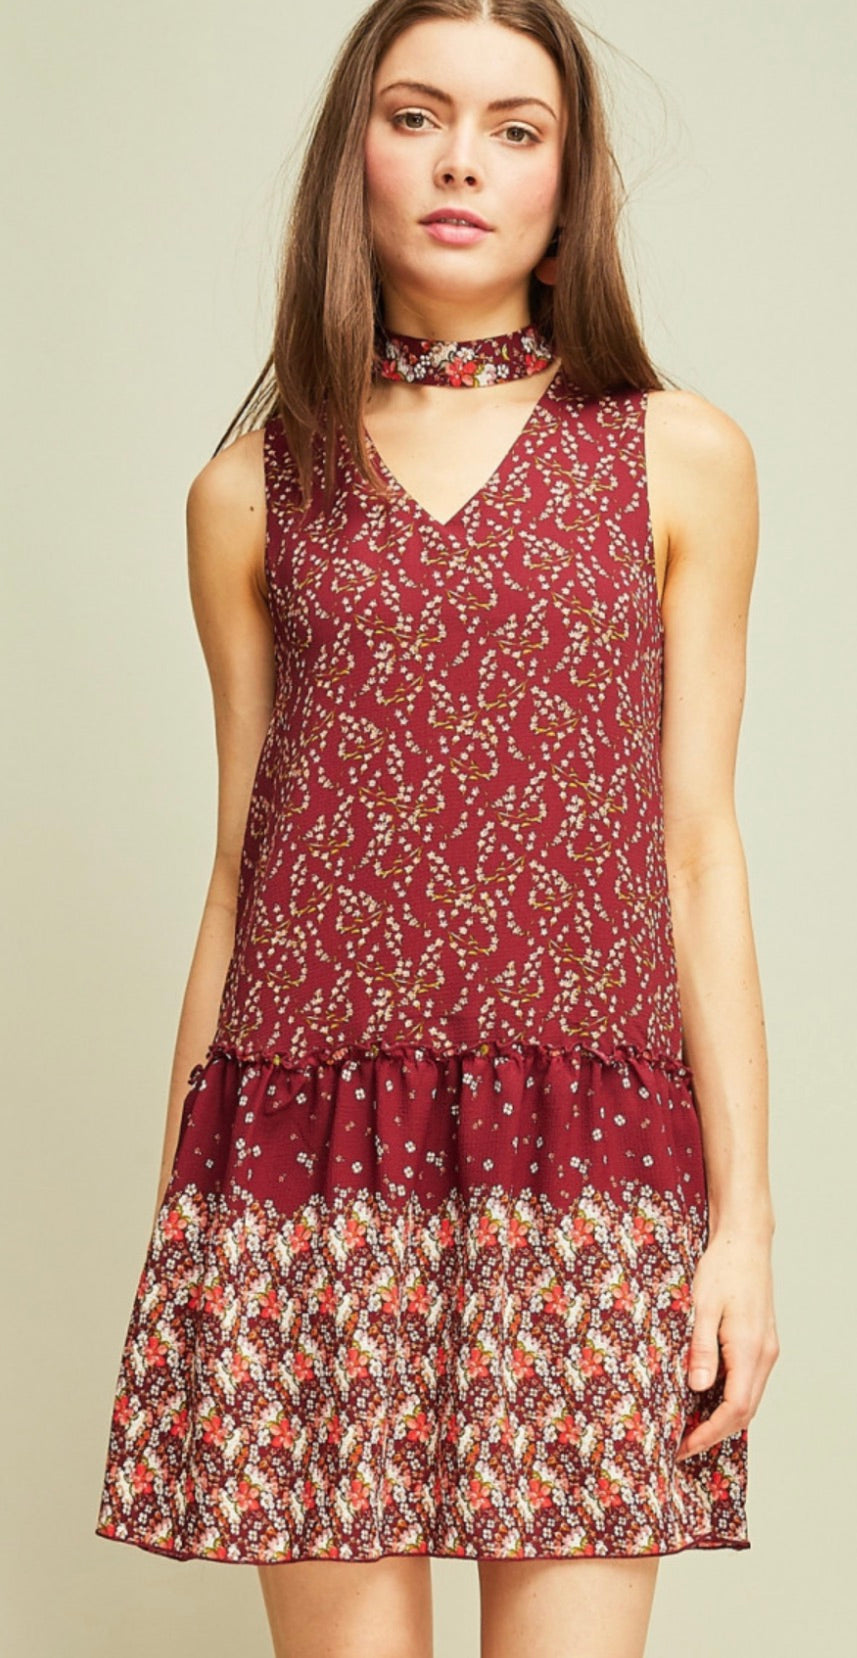 Printed Textured Shift Dress